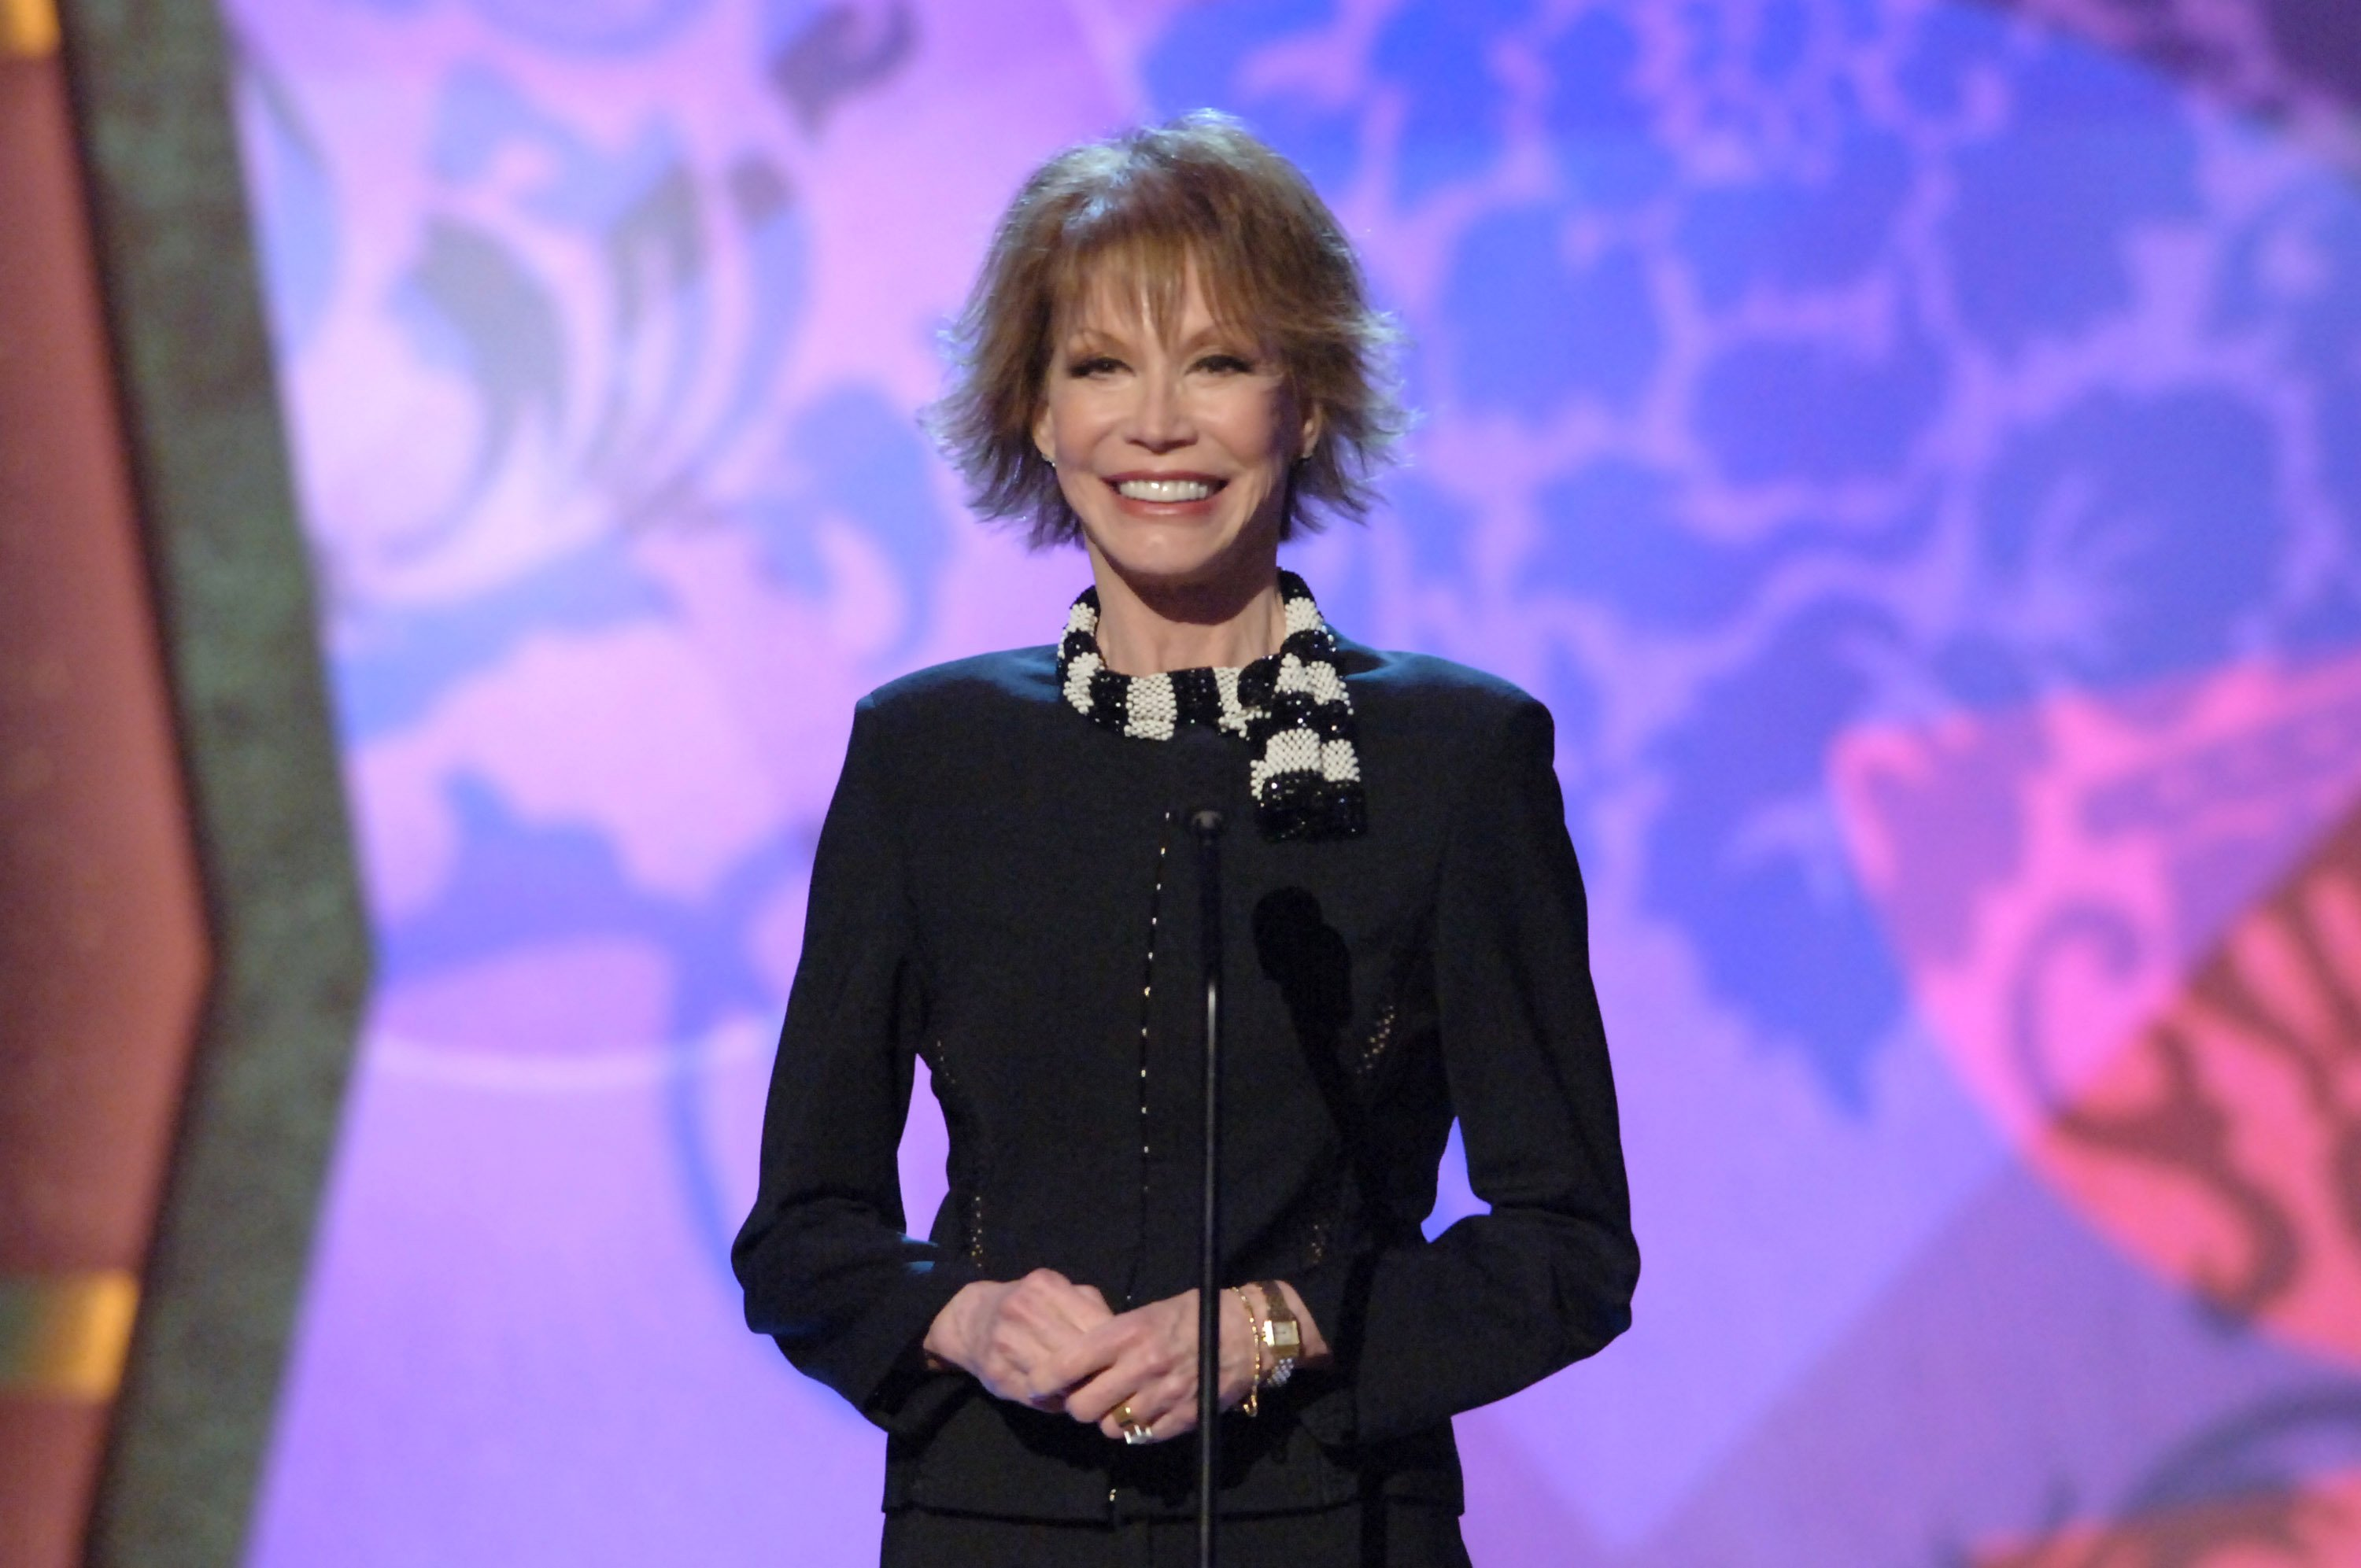 Mary Tyler Moore, presenter during 4th Annual TV Land Awards - Show at Barker Hangar in Santa Monica, California, United States.| Source: Getty Images